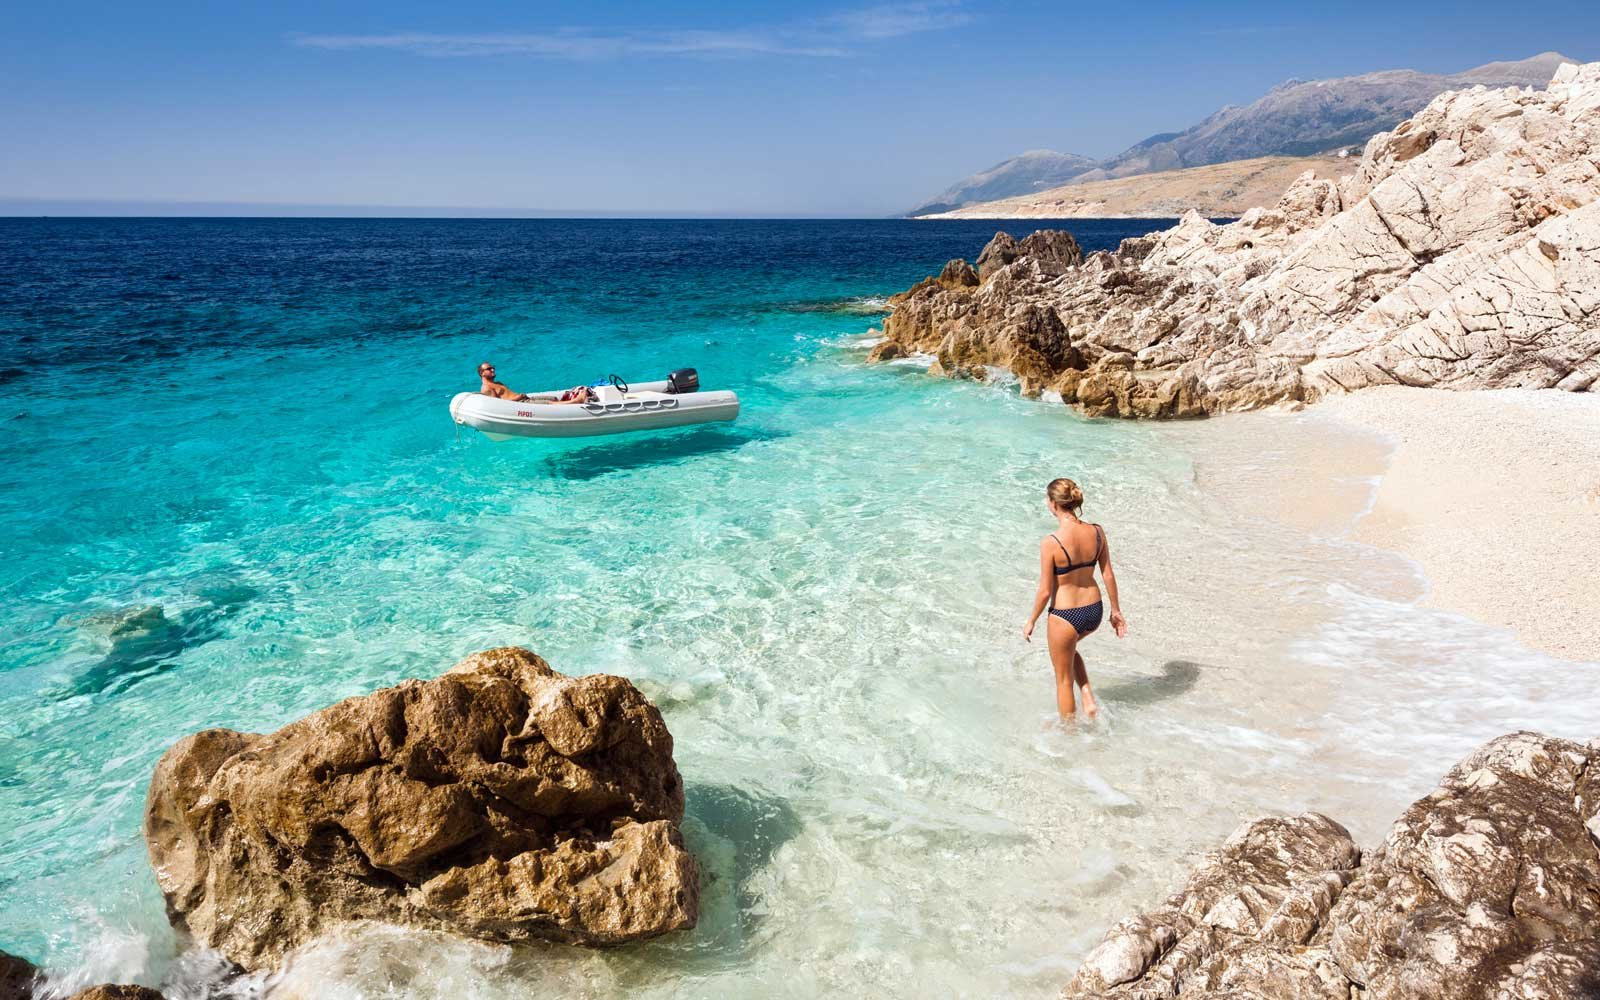 Young woman walking along a beach with a boat, Ionian Coastline south of Himara, Albania